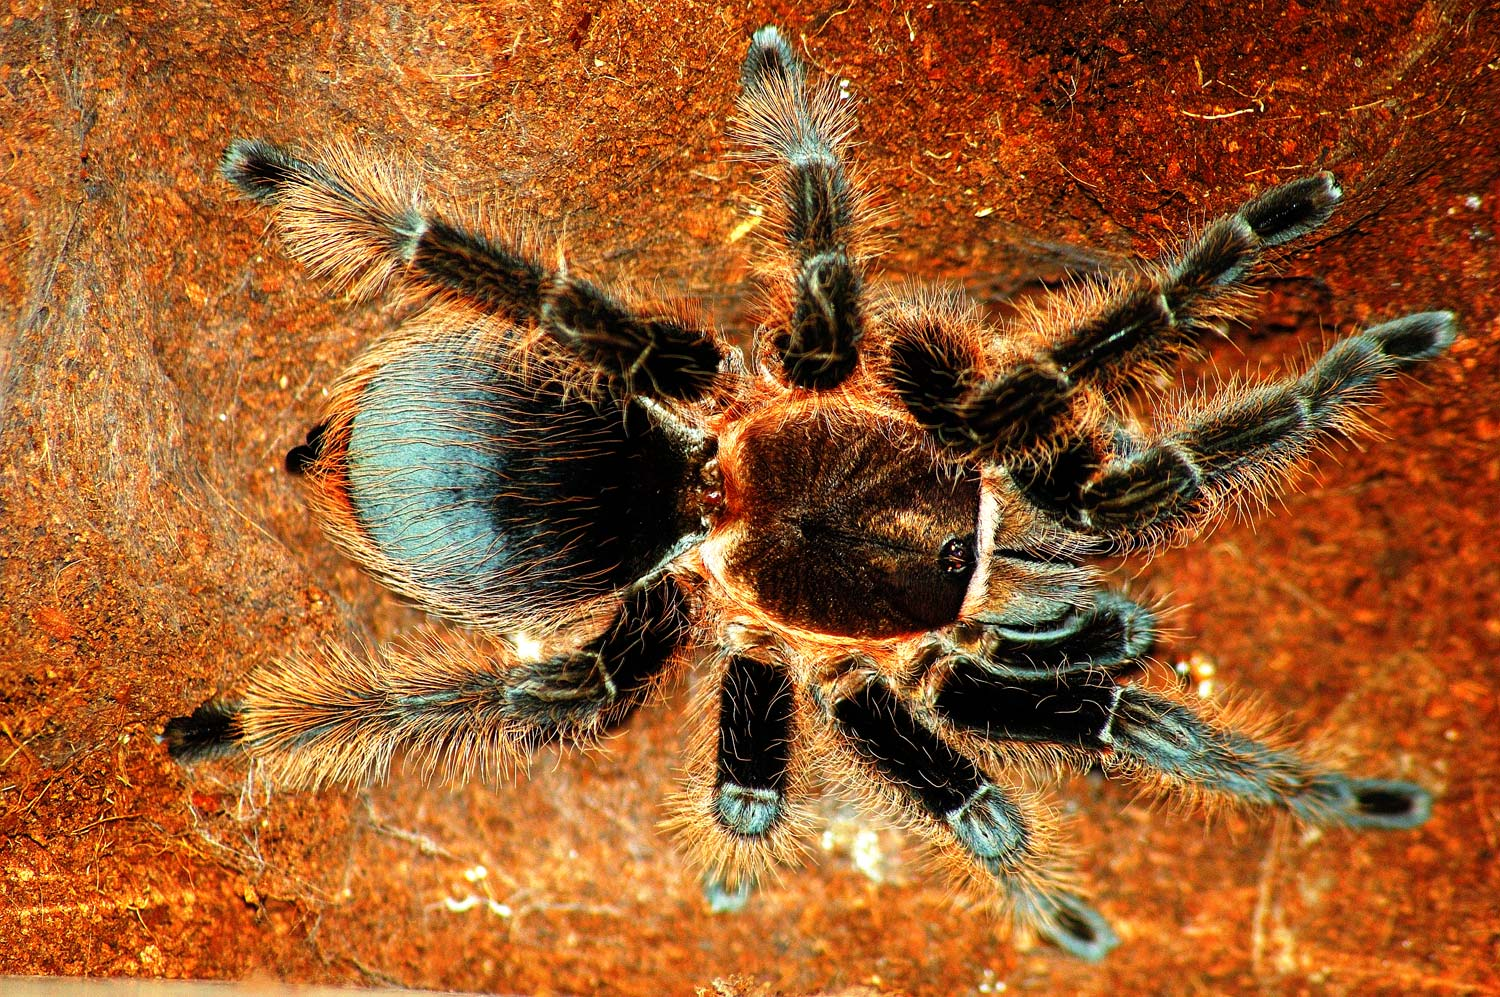 Honduran Curly-Haired Tarantula Care – The Herpetological ... on map where do tarantula, how long do tarantulas live, map of where camels are from, where do tarantulas live, map where do lizards live on a glass, map of brown recluse spiders in the us, map of arkansas, were tarantula live, map where do praying mantis live, map of mississippi natural resources, maps of where the brown widows live, map of tarantulas in us, map of tarantula hawk wasp,